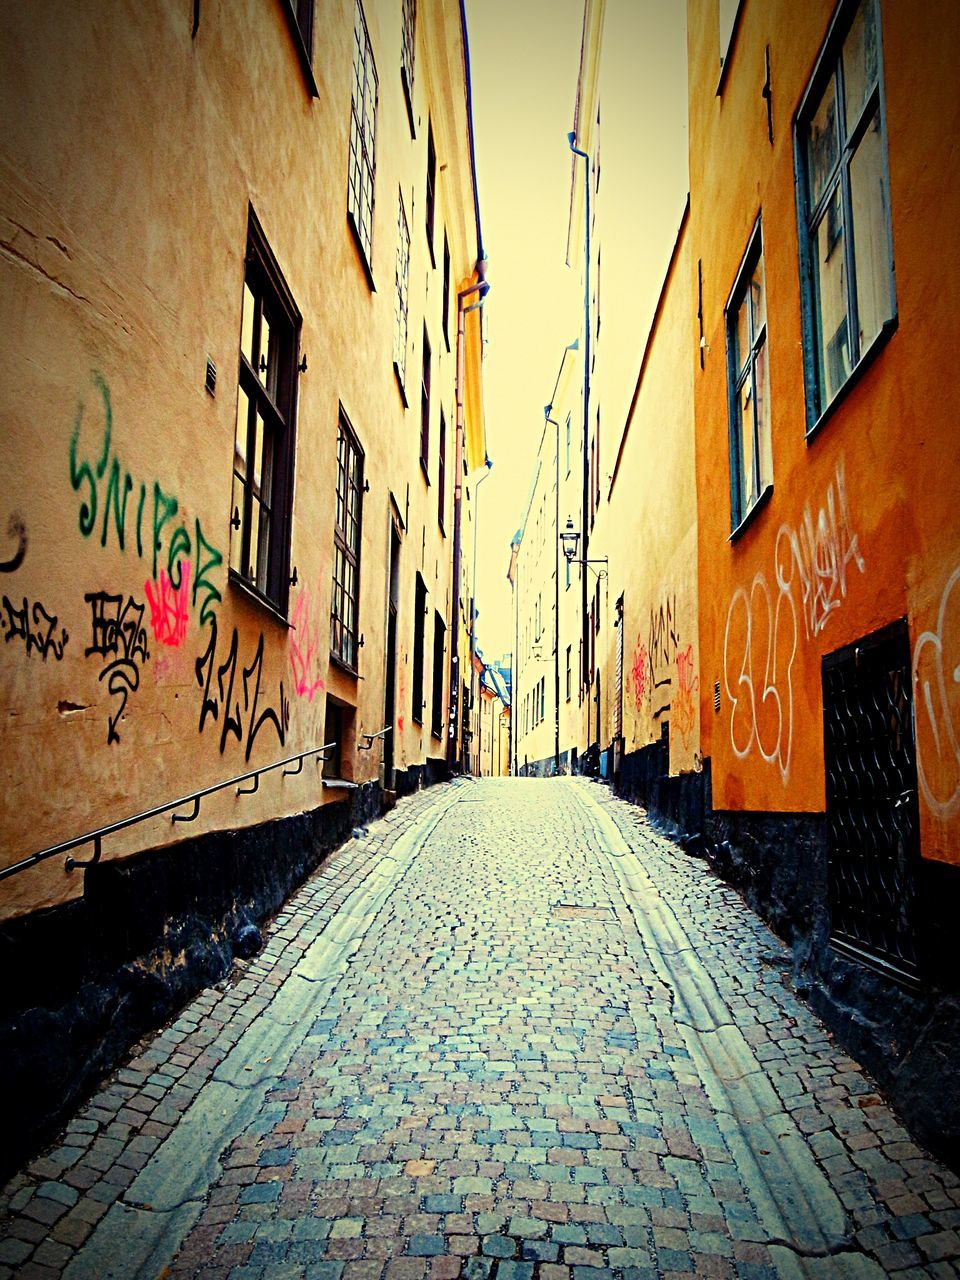 cobblestone, architecture, building exterior, built structure, street, city, the way forward, alley, outdoors, day, no people, sky